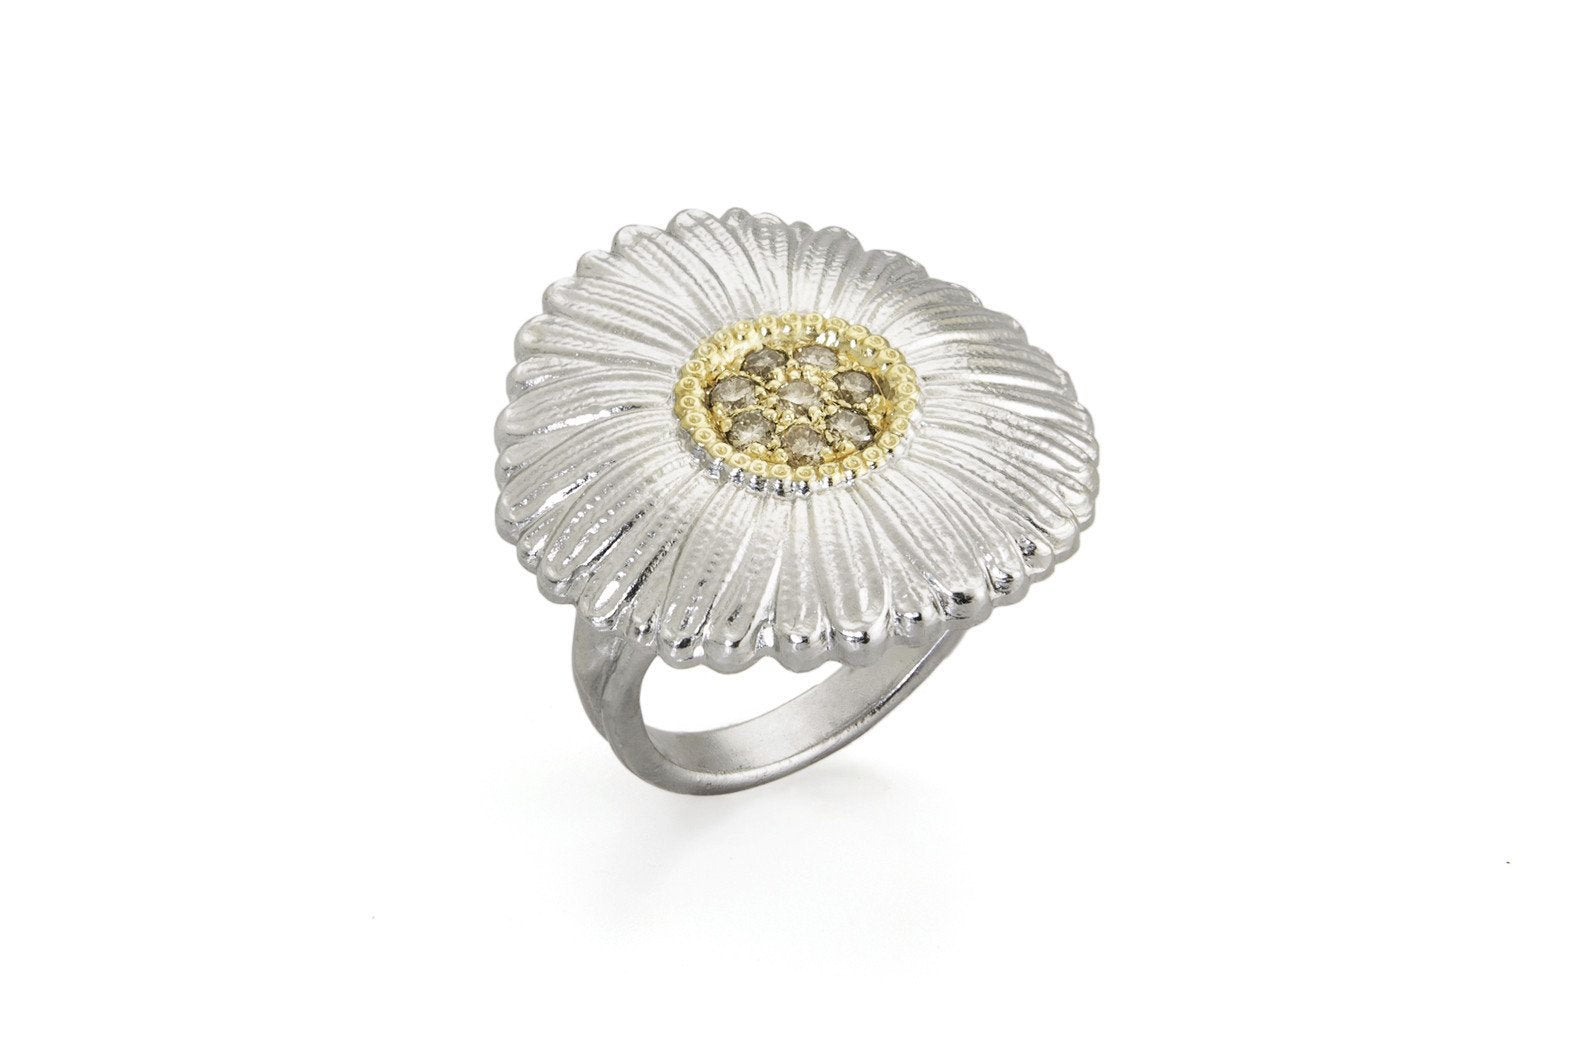 BUCCELLATI-BLOSSOMS-DAISY-RING-BROWN-DIAMONDS-STERLING-SILVER